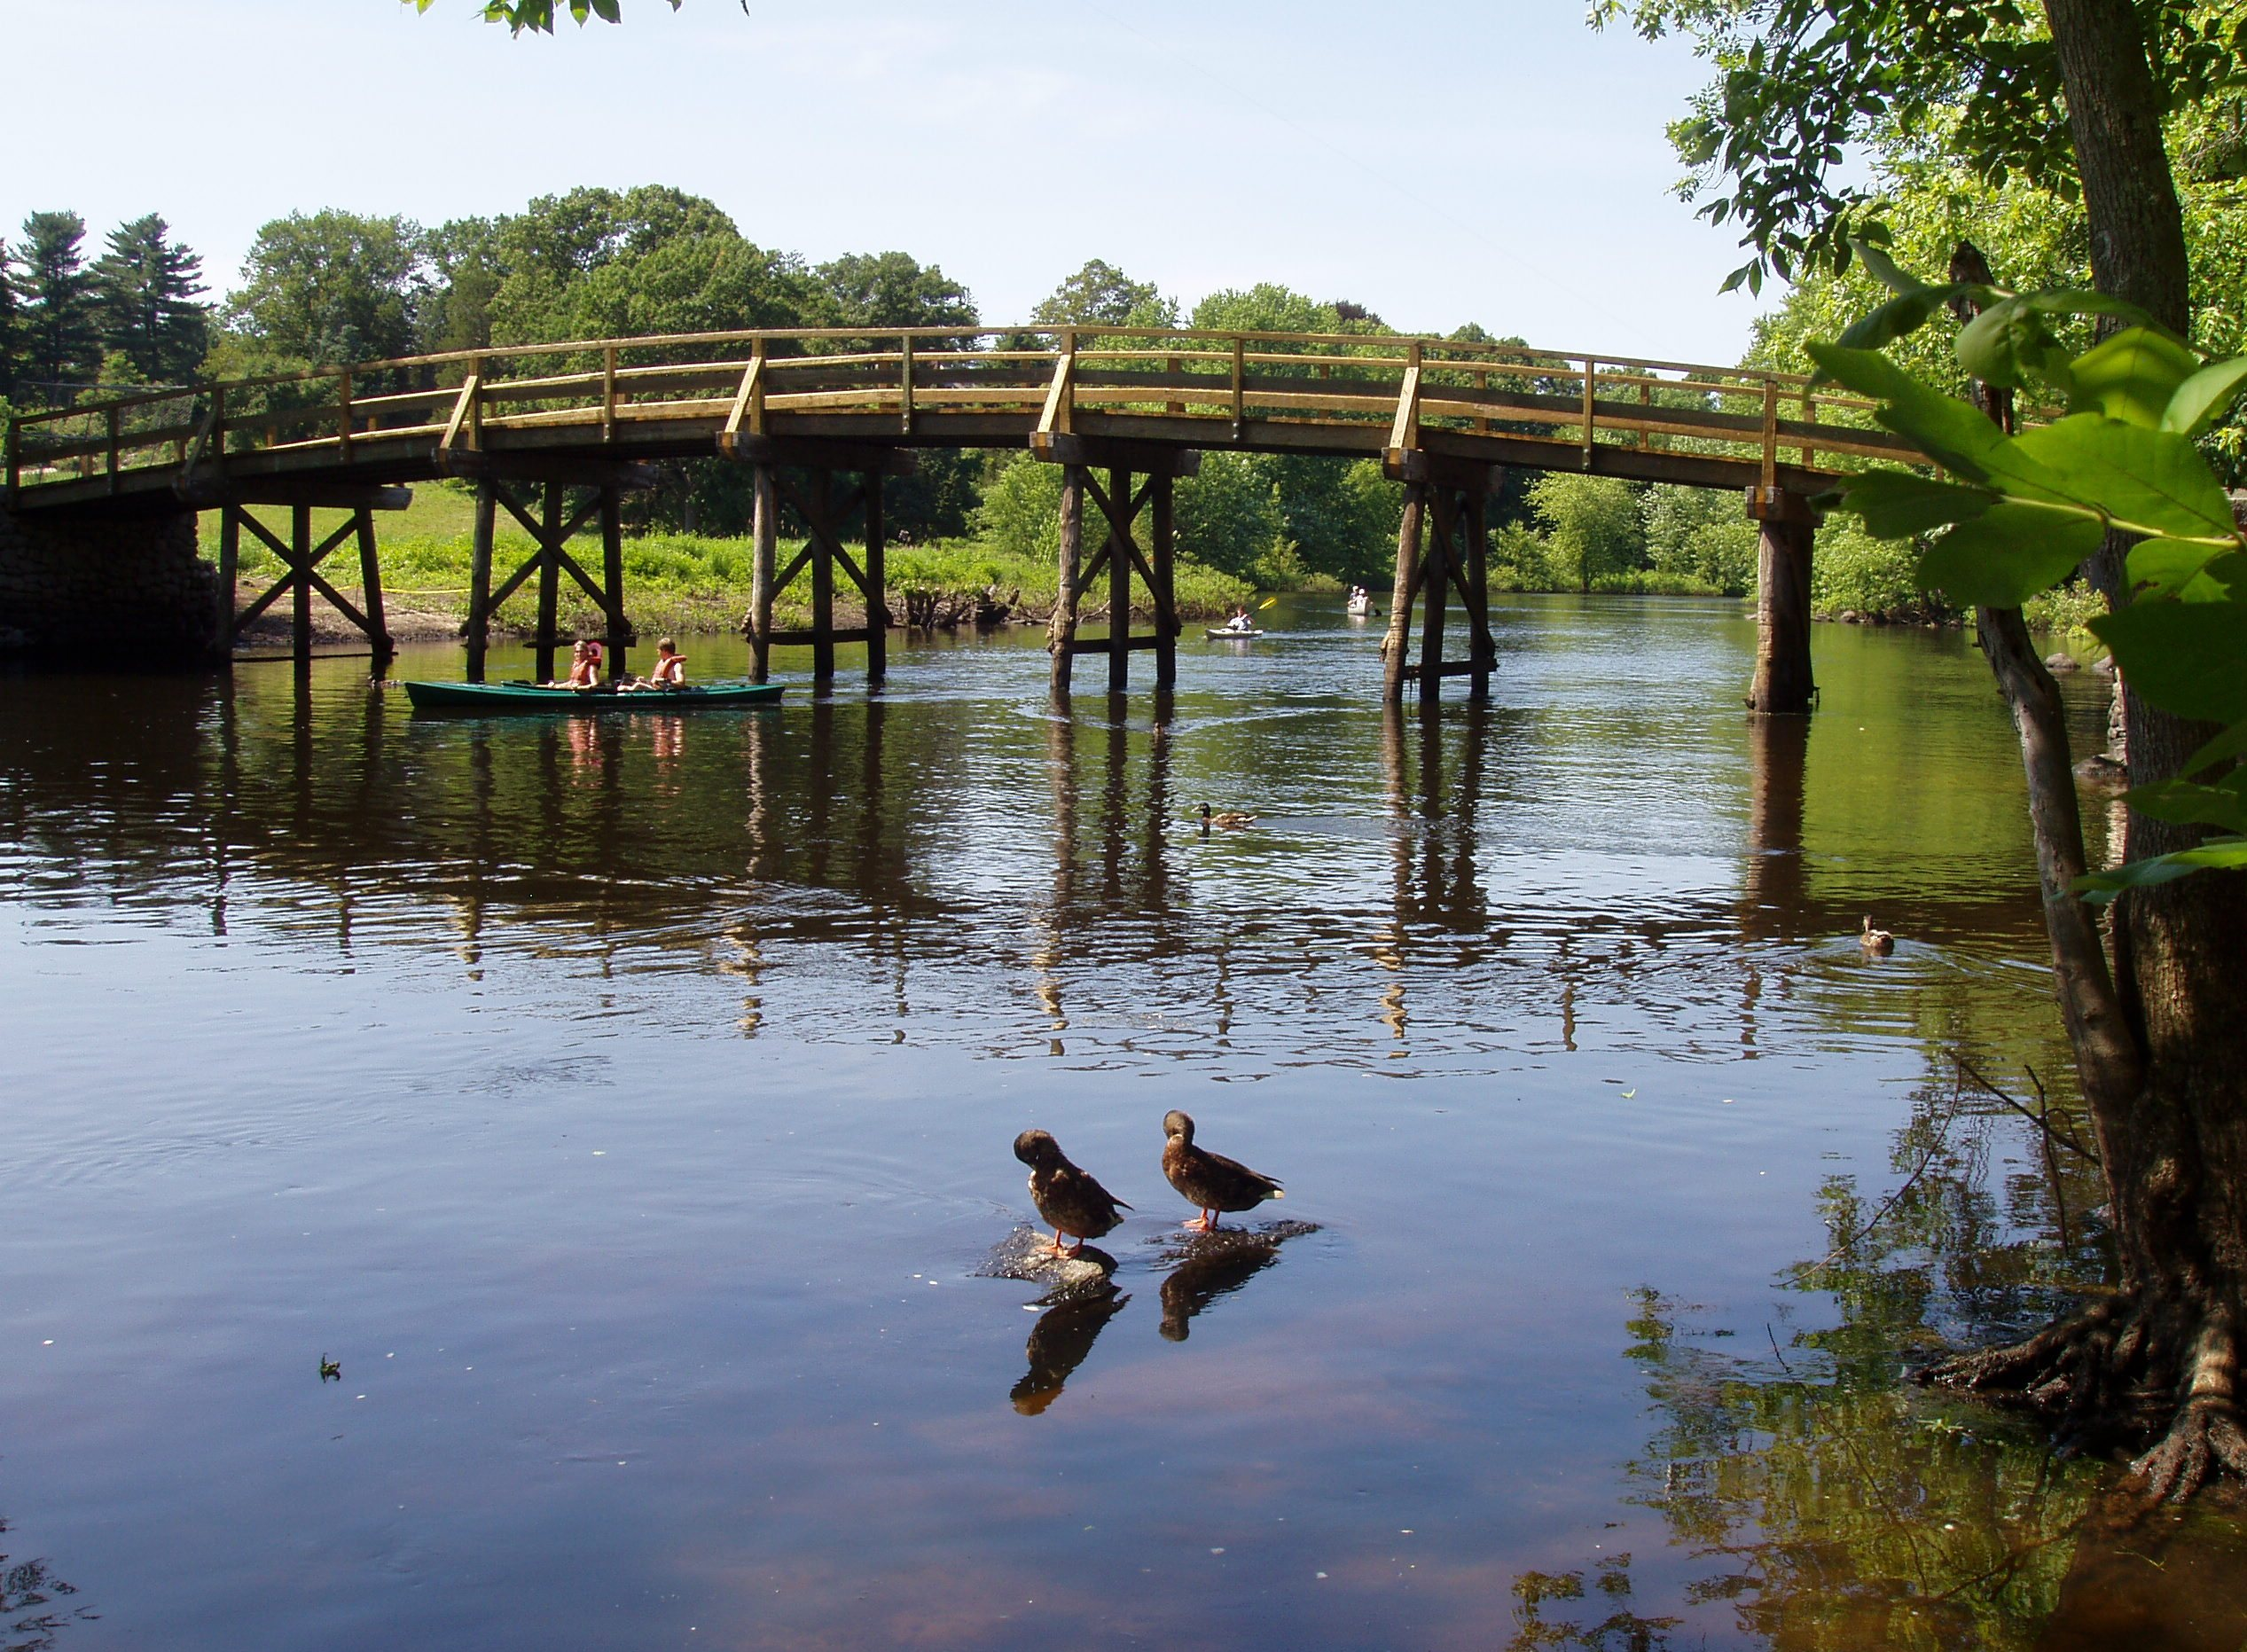 Old North Bridge over the Concord River in Concord, Massachusetts. Photo taken on July 4, 2005.